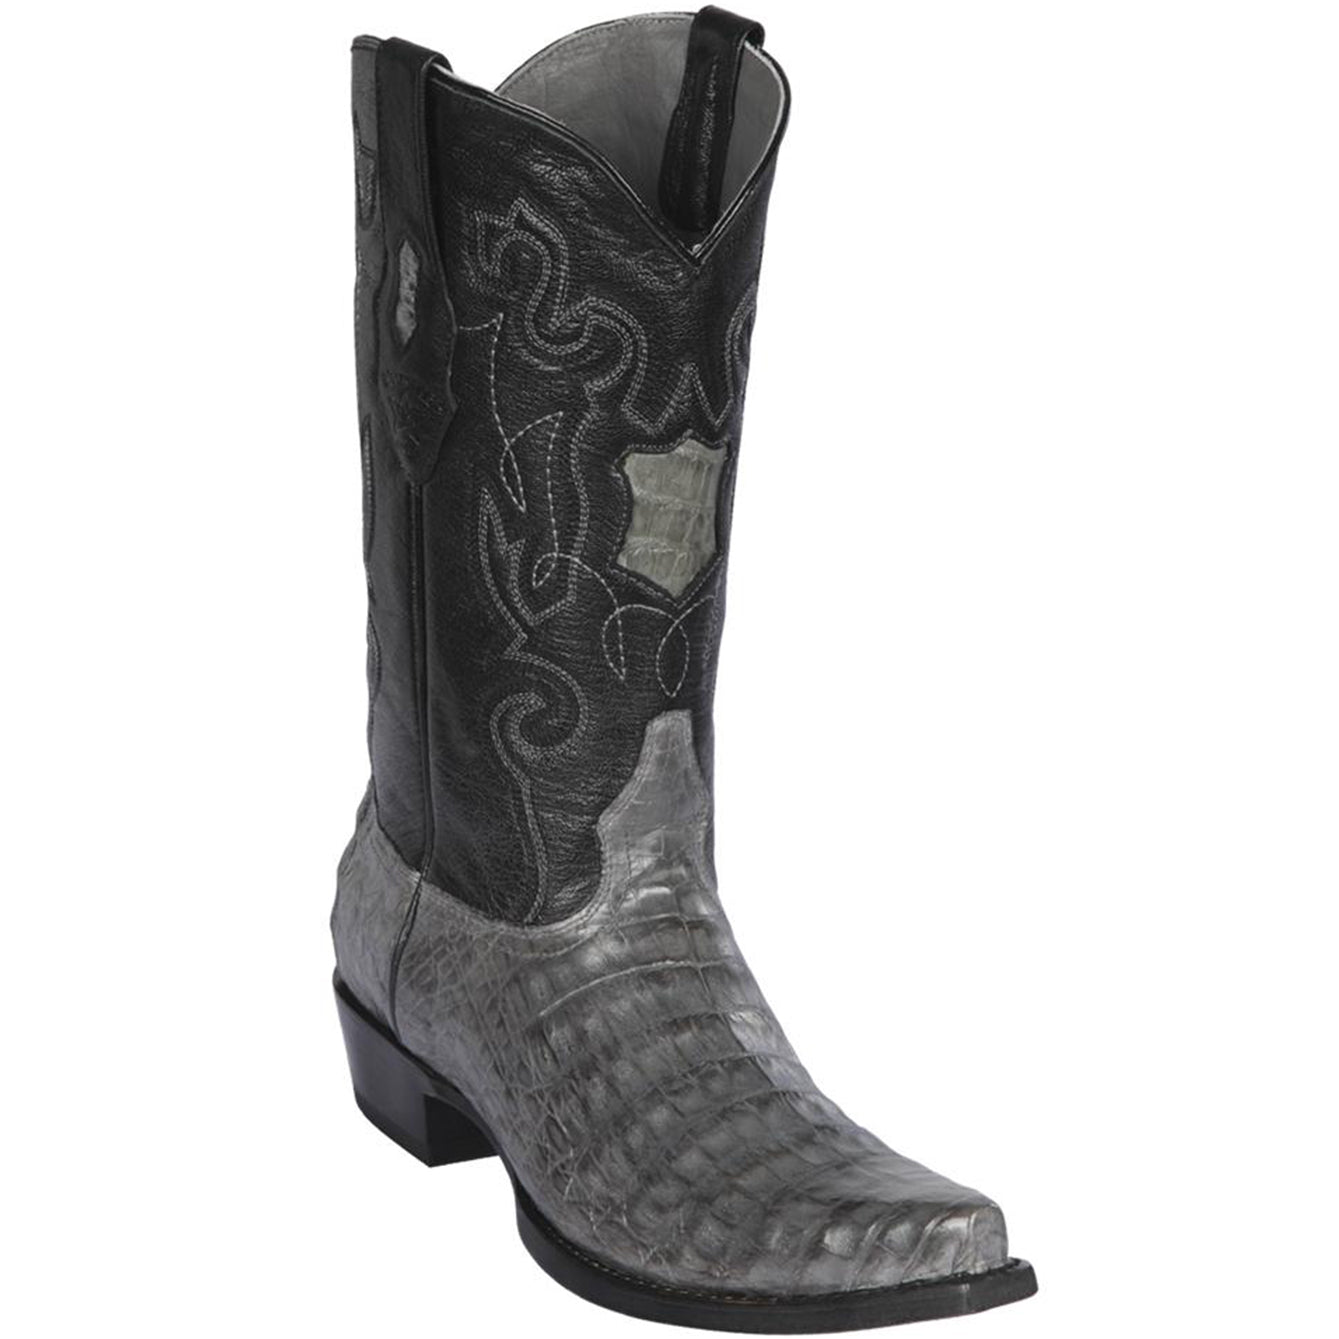 Gray Smooth Caiman Belly Snip Toe Cowboy Boot